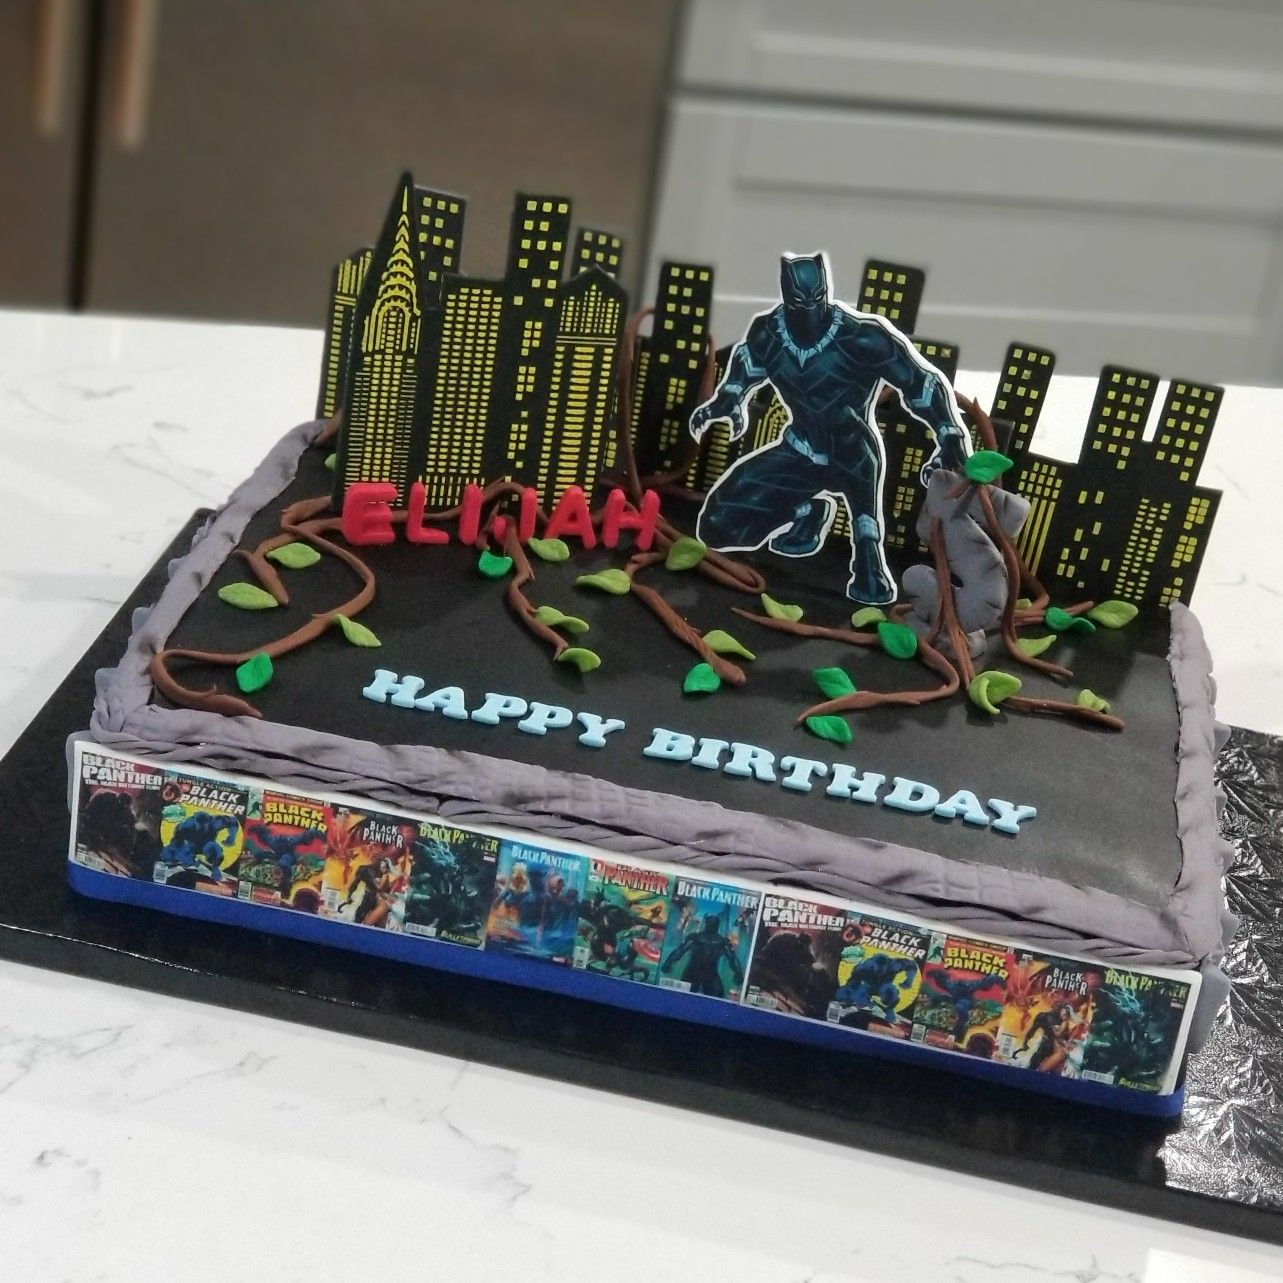 pictures of black panther birthday cakes